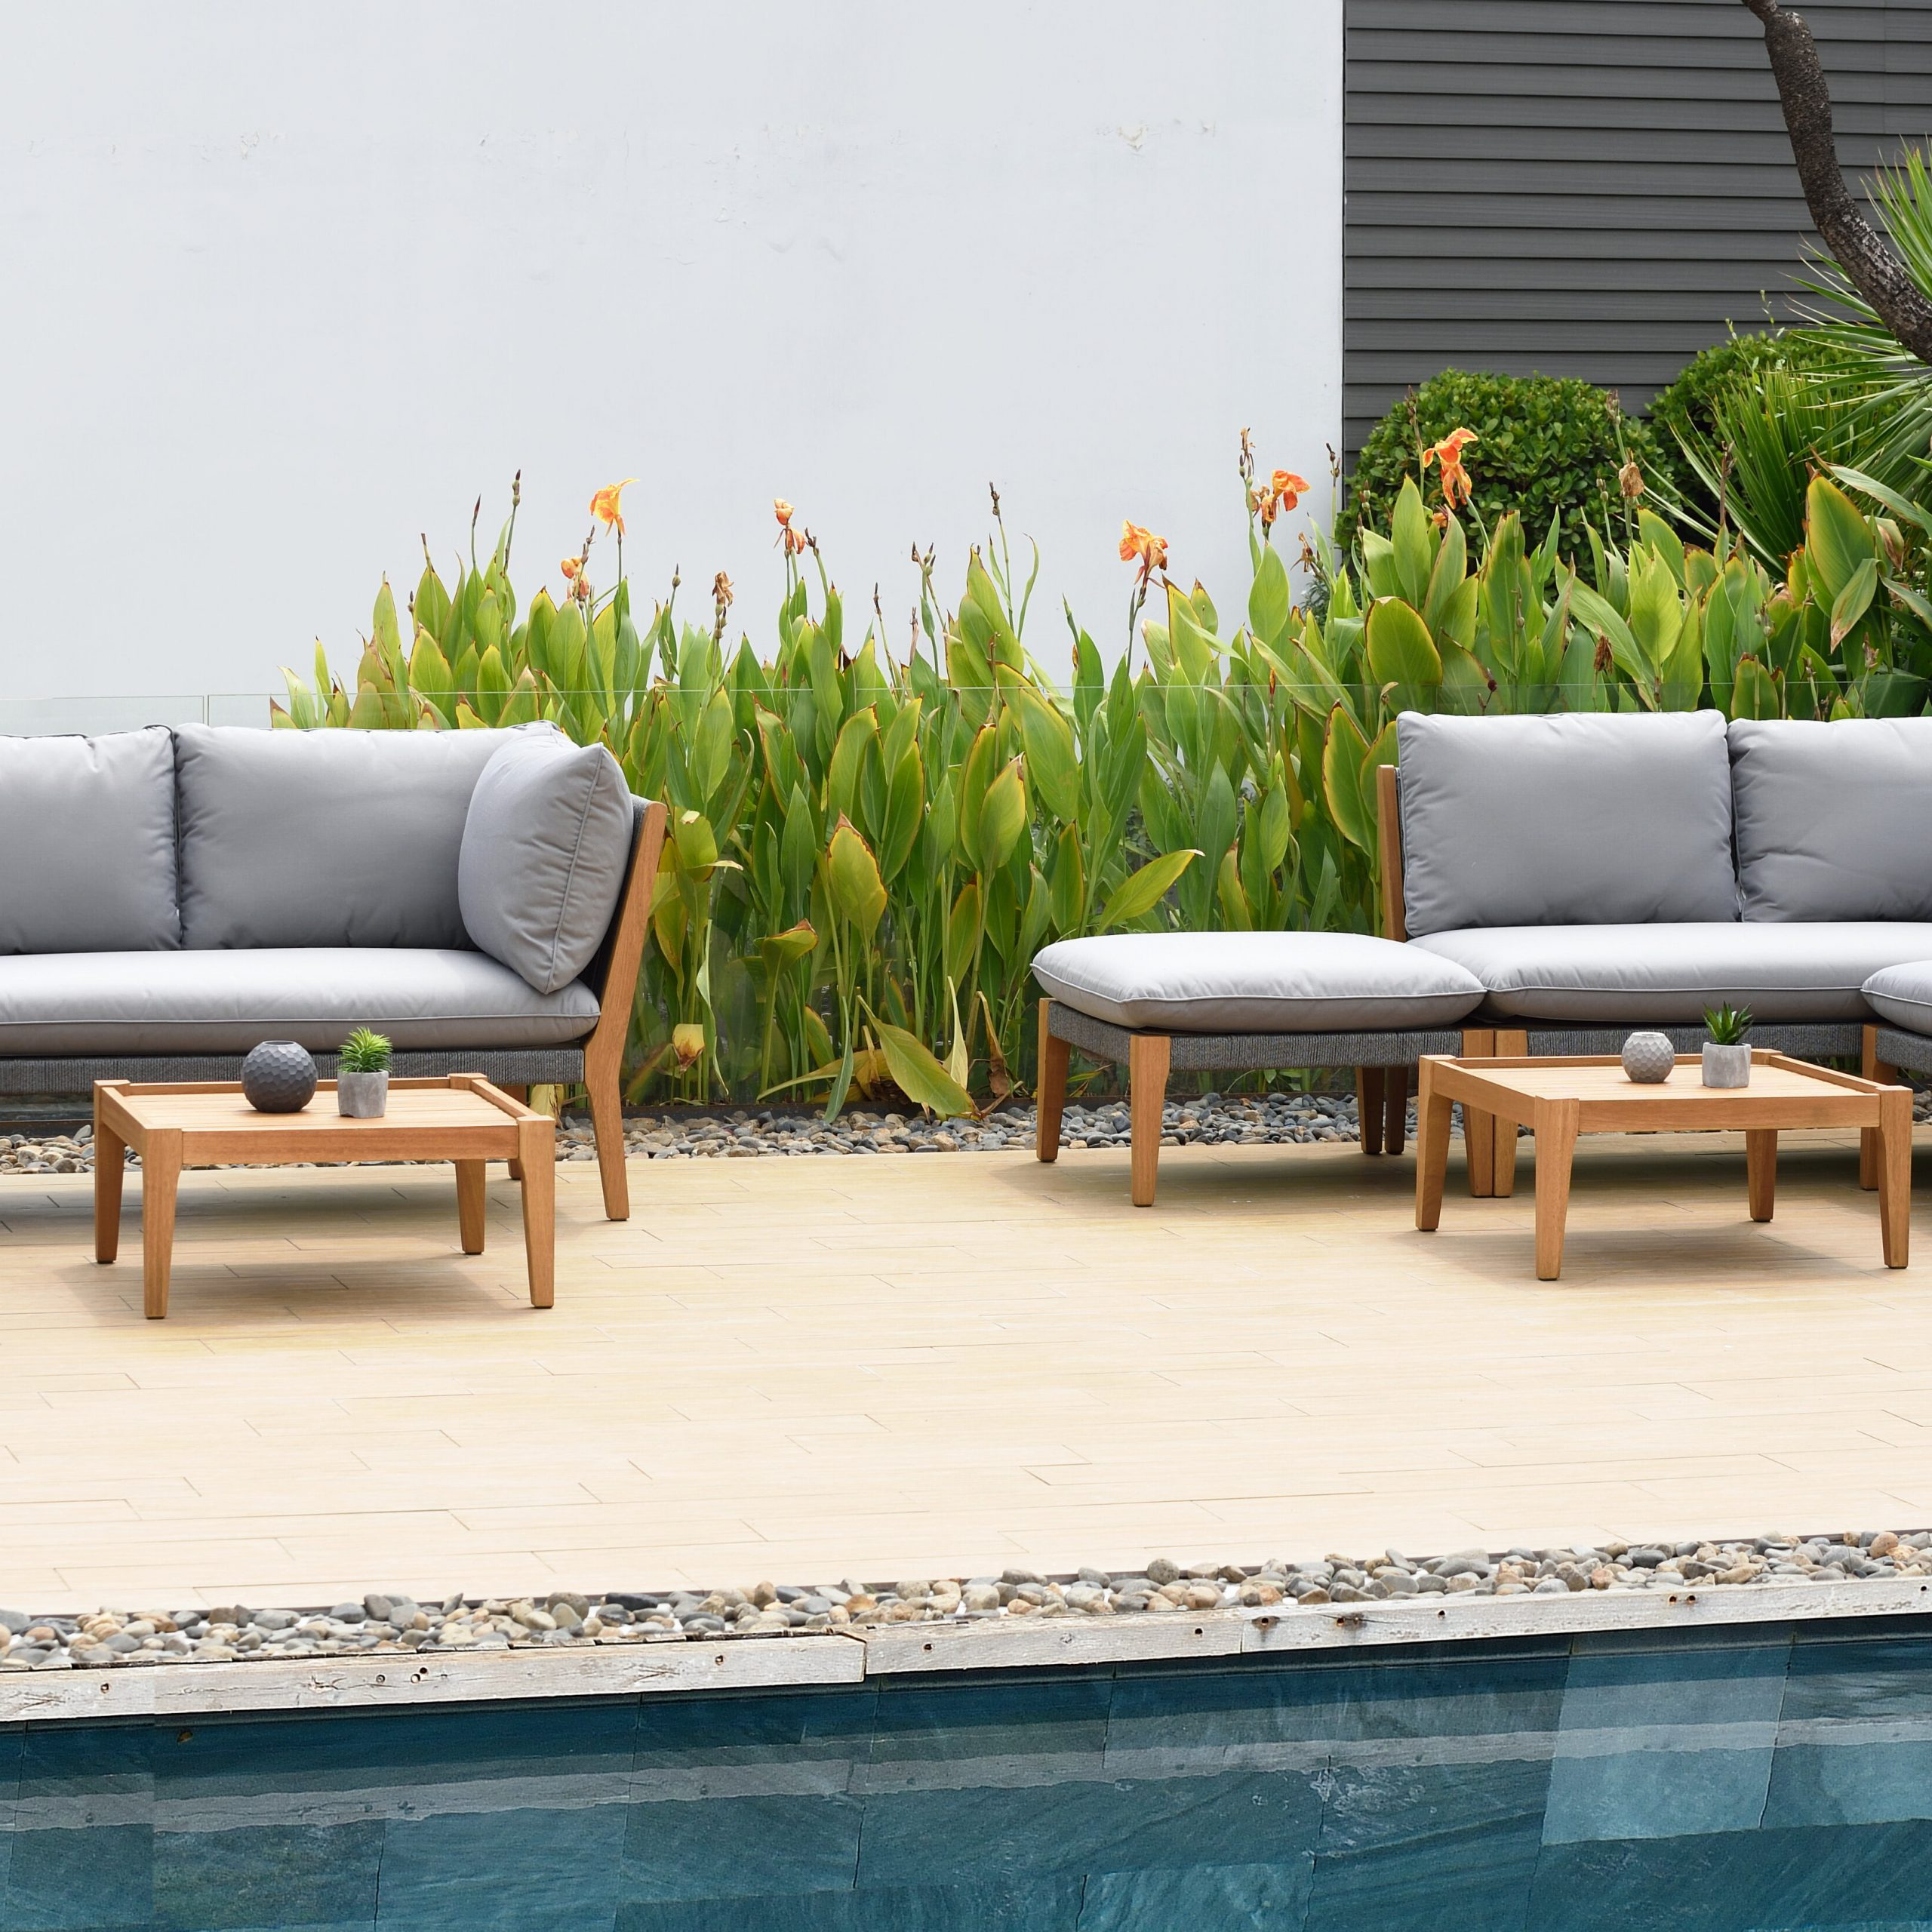 Popular Olinda 8 Piece Teak Sectional Seating Group With Cushions Intended For Olinda 4 Piece Teak Sectionals Seating Group With Cushions (View 2 of 25)